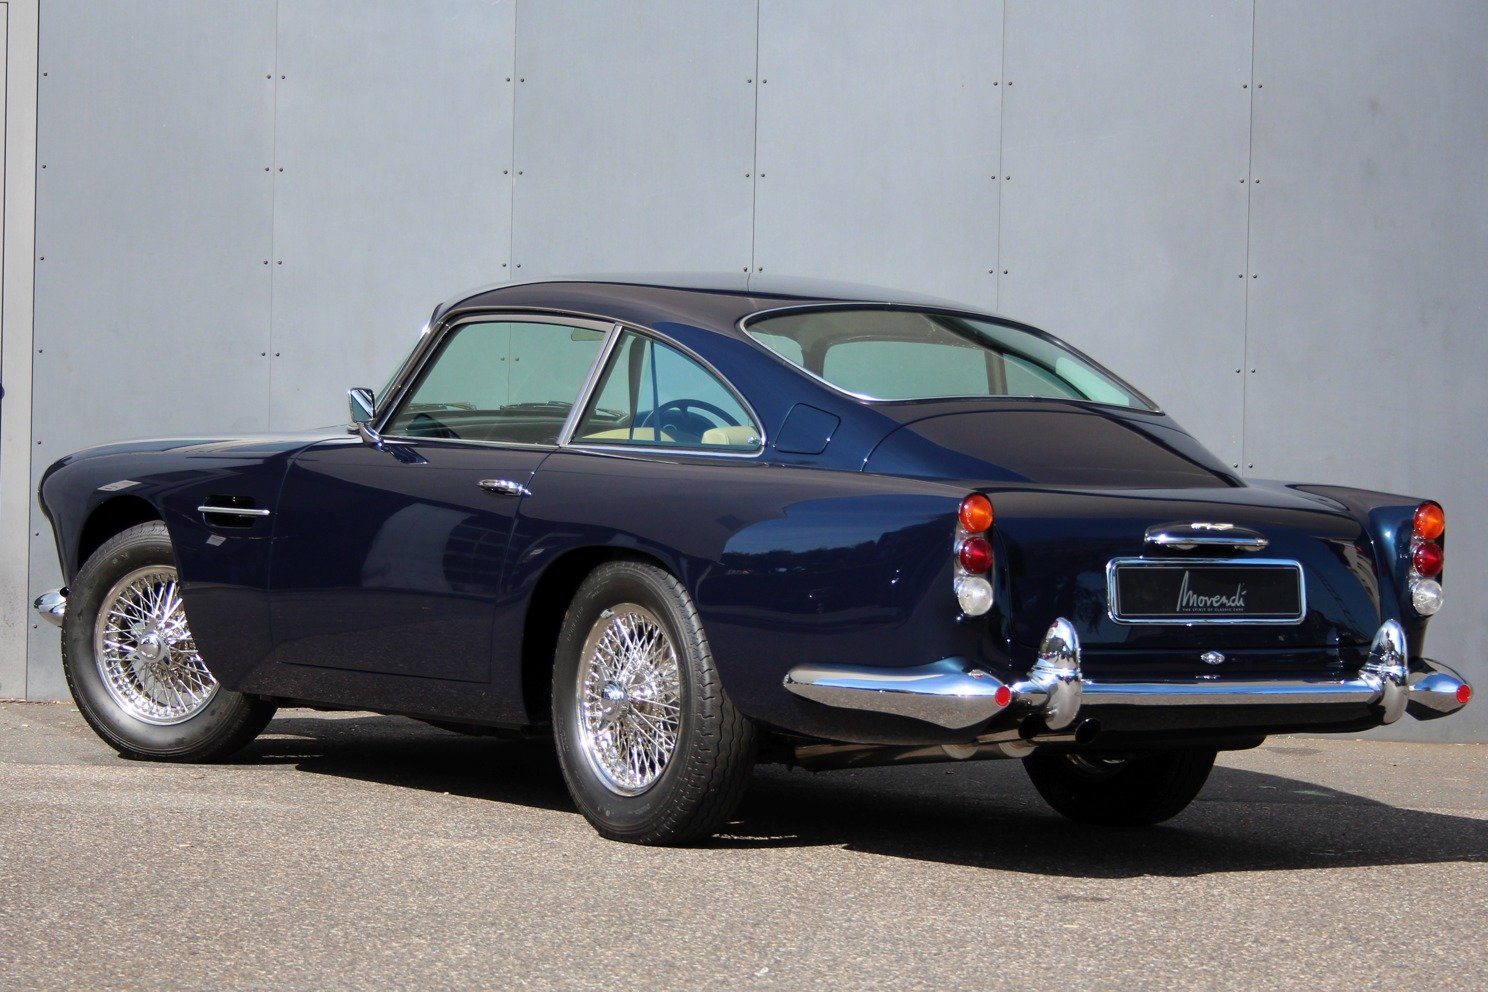 1963 Aston Martin DB4 Series V RHD - Ex. Victor Gaunlett For Sale (picture 2 of 6)